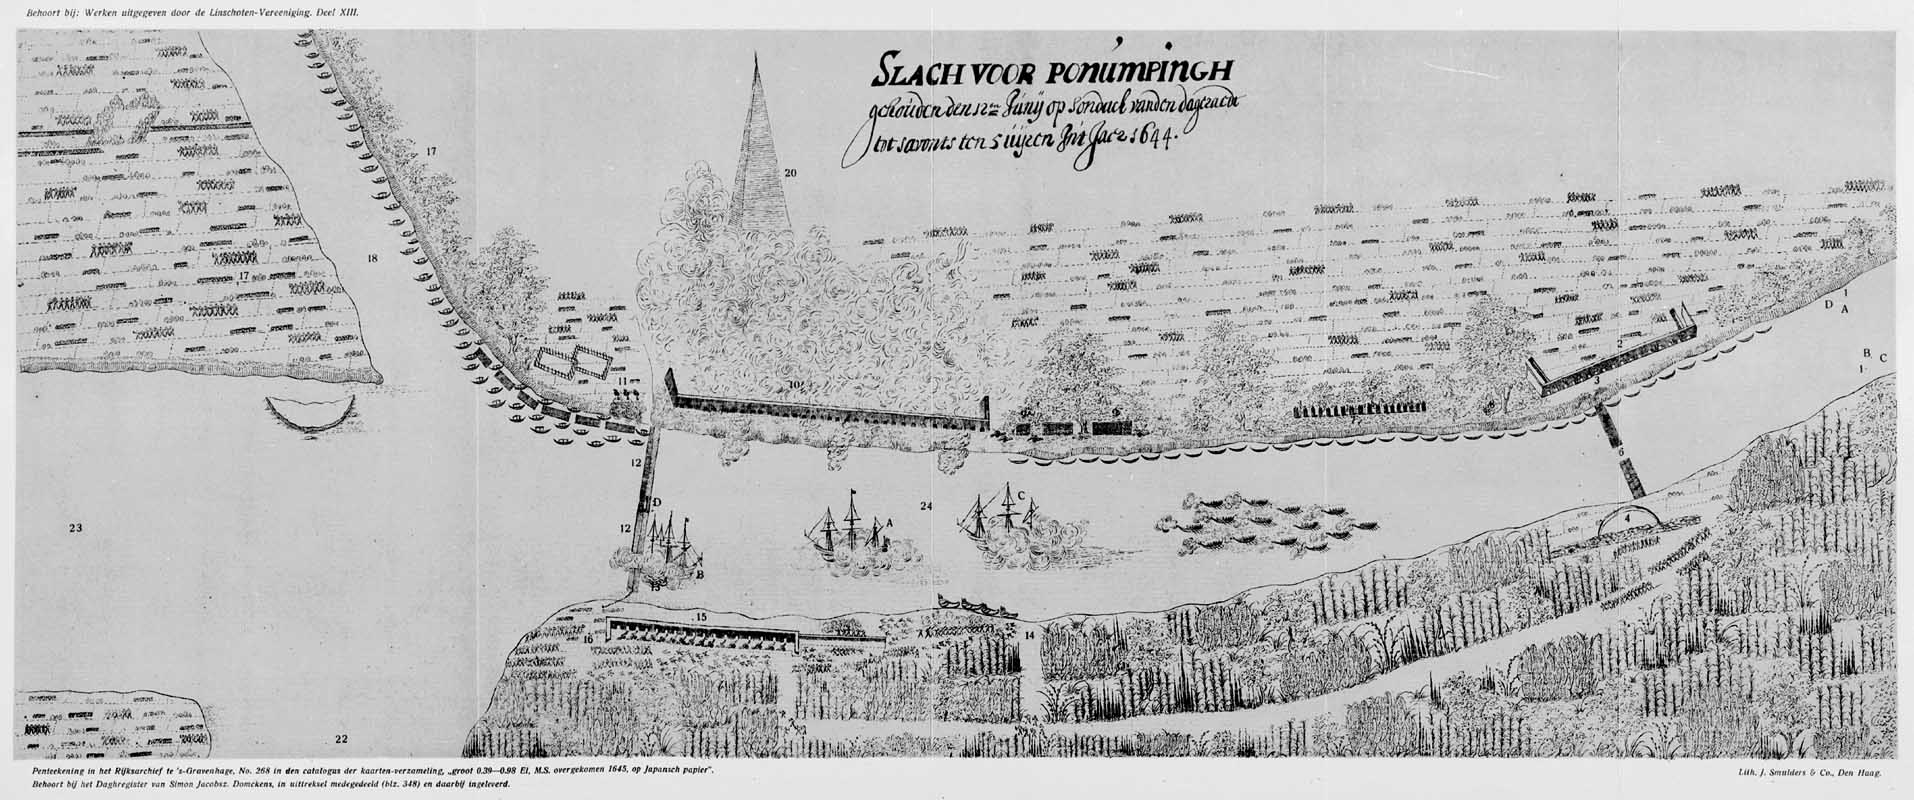 Battle of Phnom Penh, 1644